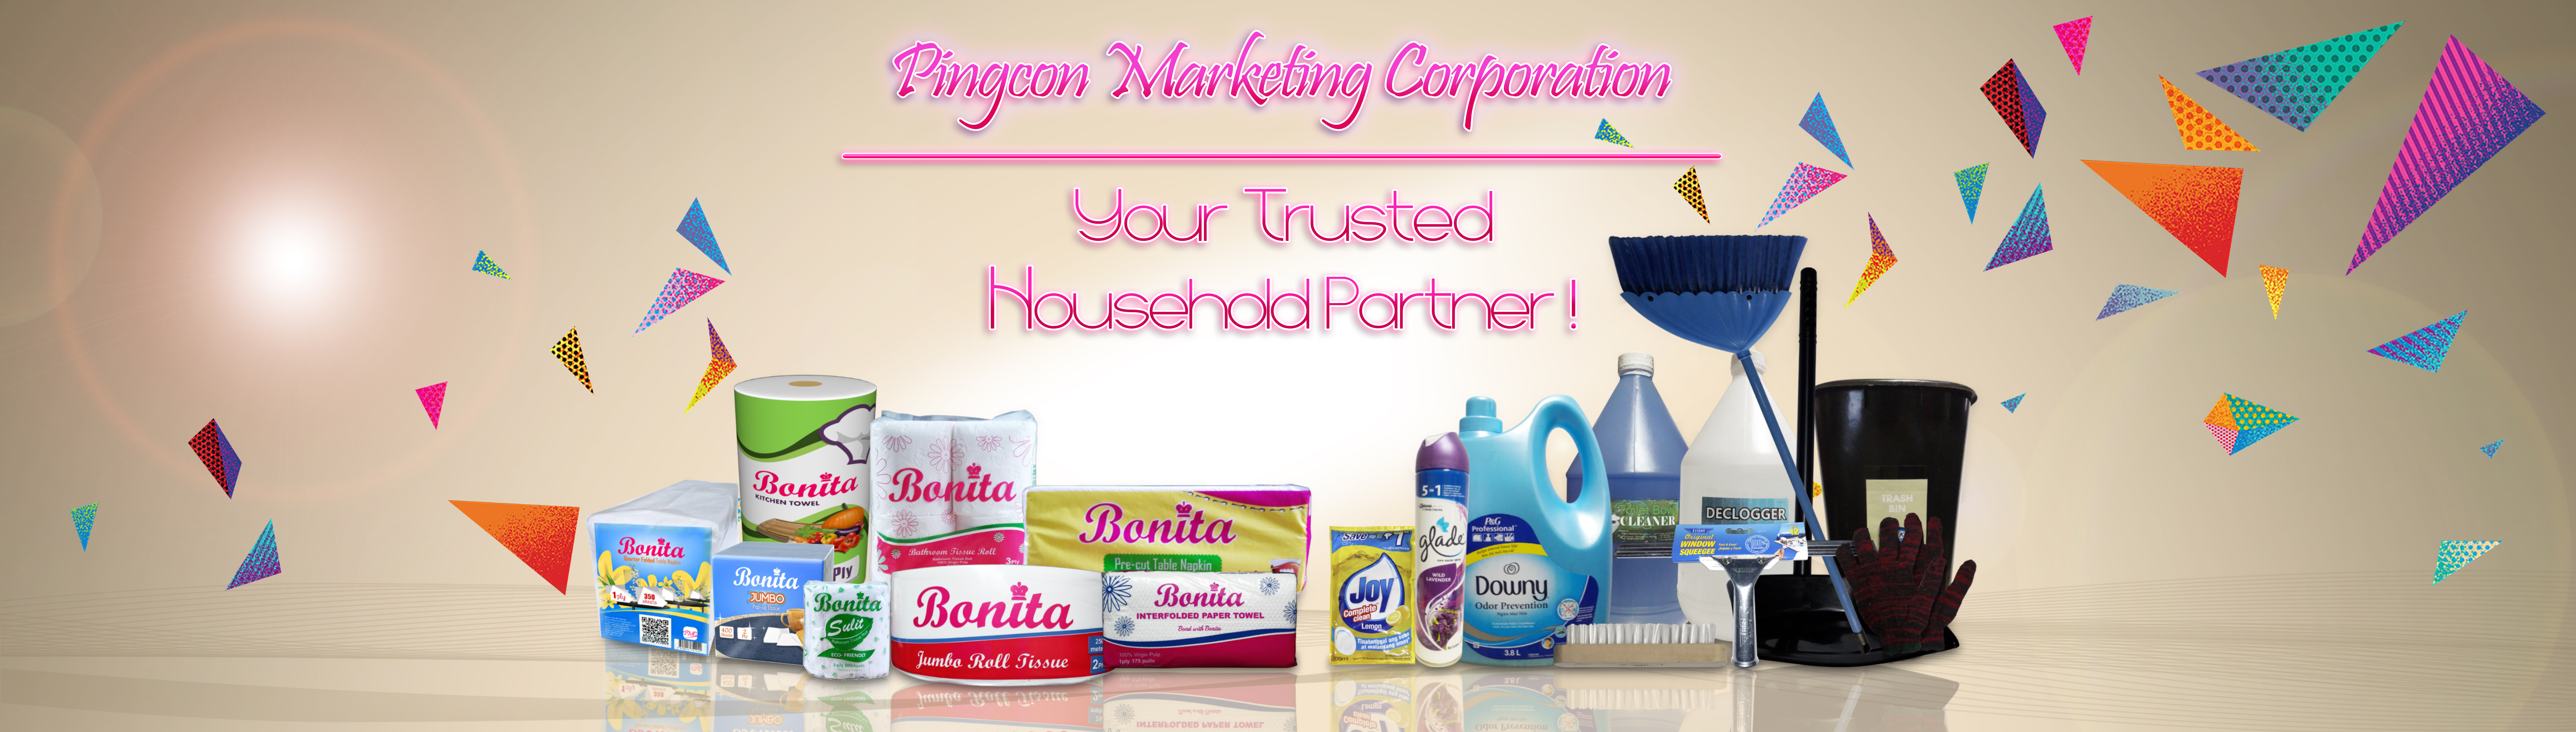 Pingcon Marketing Corporation